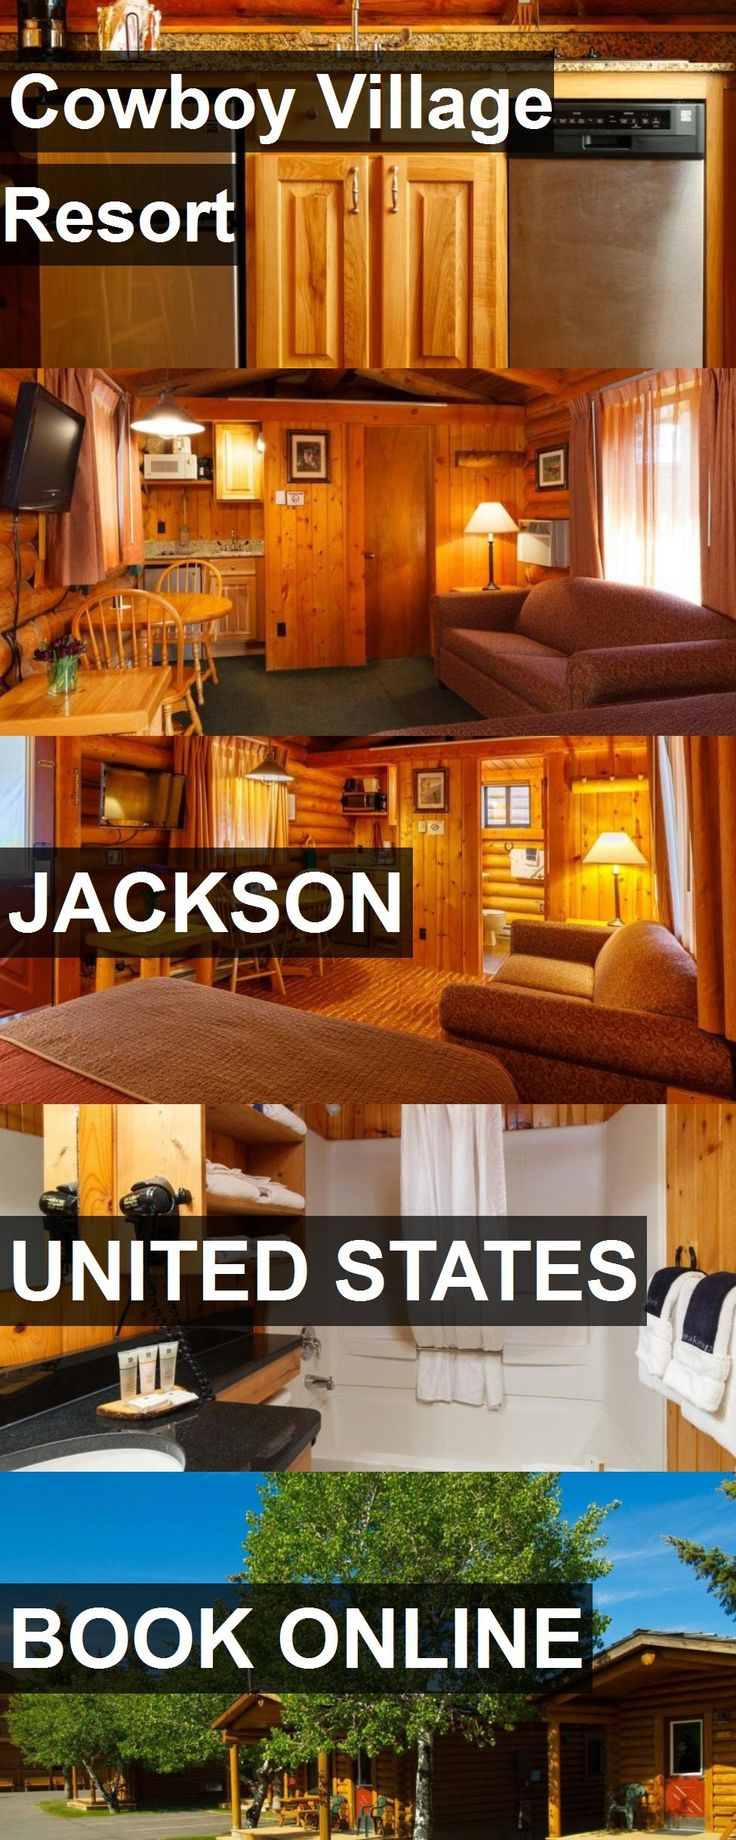 Hotel Cowboy Village Resort in Jackson, United States. For more information, photos, reviews and best prices please follow the link. #UnitedStates #Jackson #CowboyVillageResort #hotel #travel #vacation